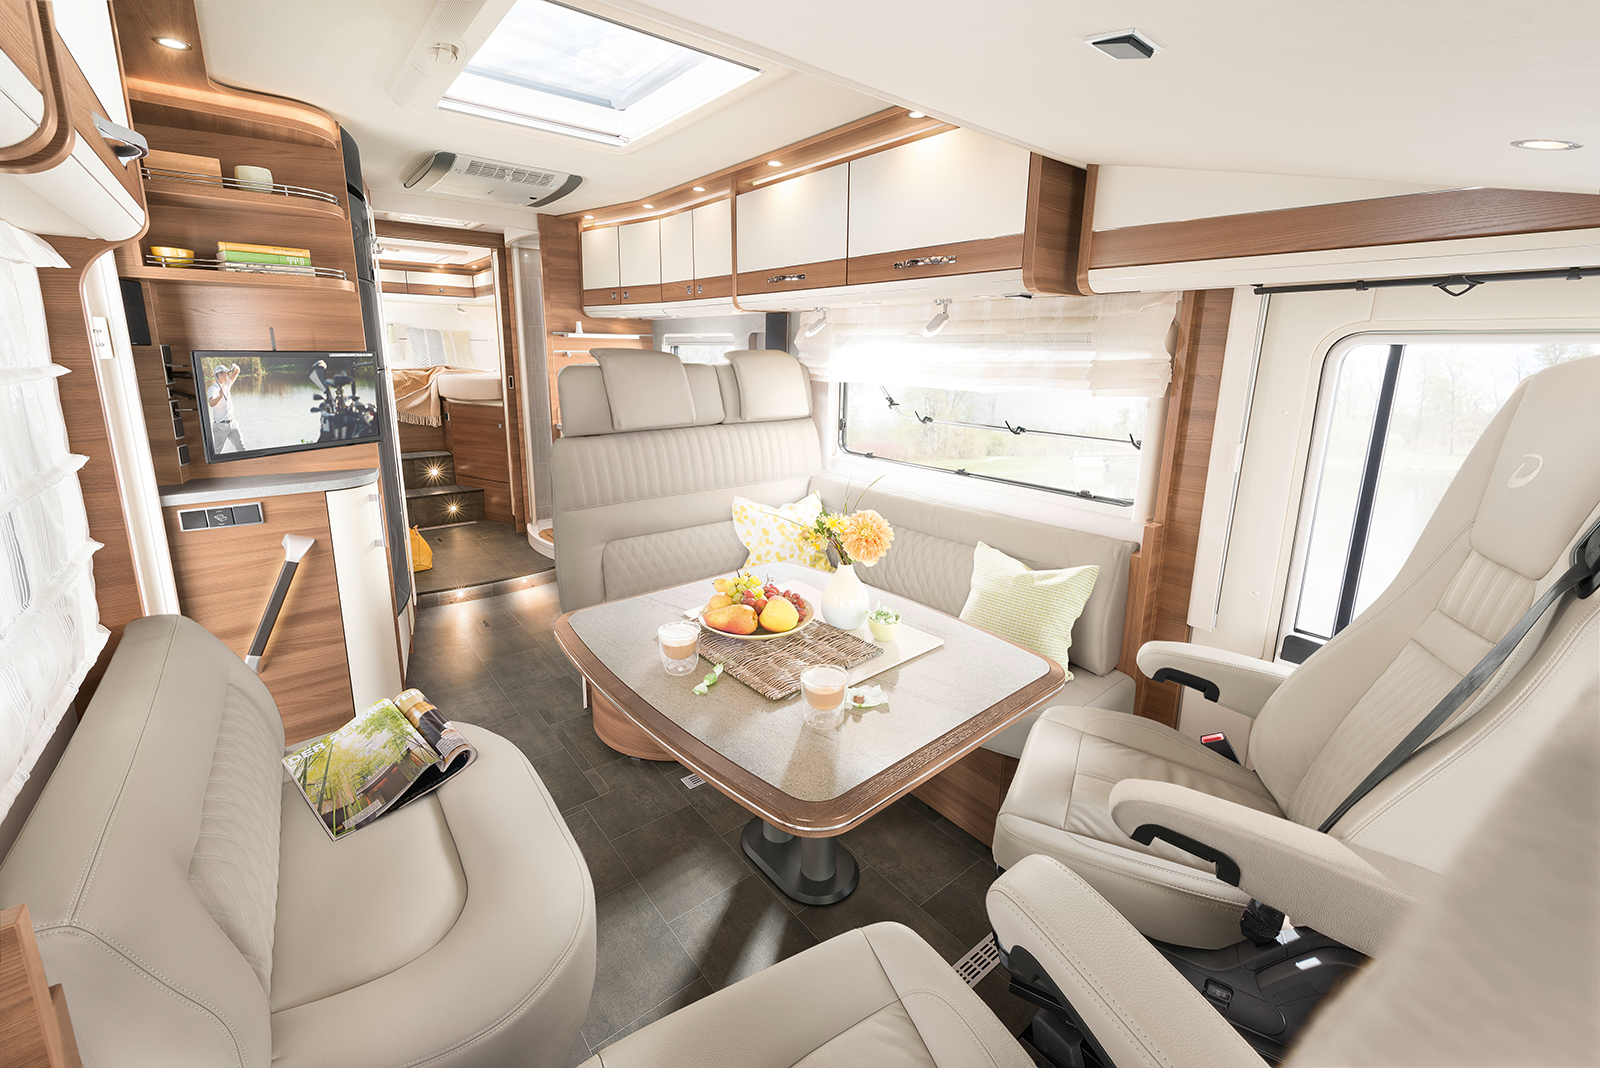 This is the premium class: ample room throughout the vehicle – enjoy a luxurious sense of space from the seating lounge to the single beds in the rear